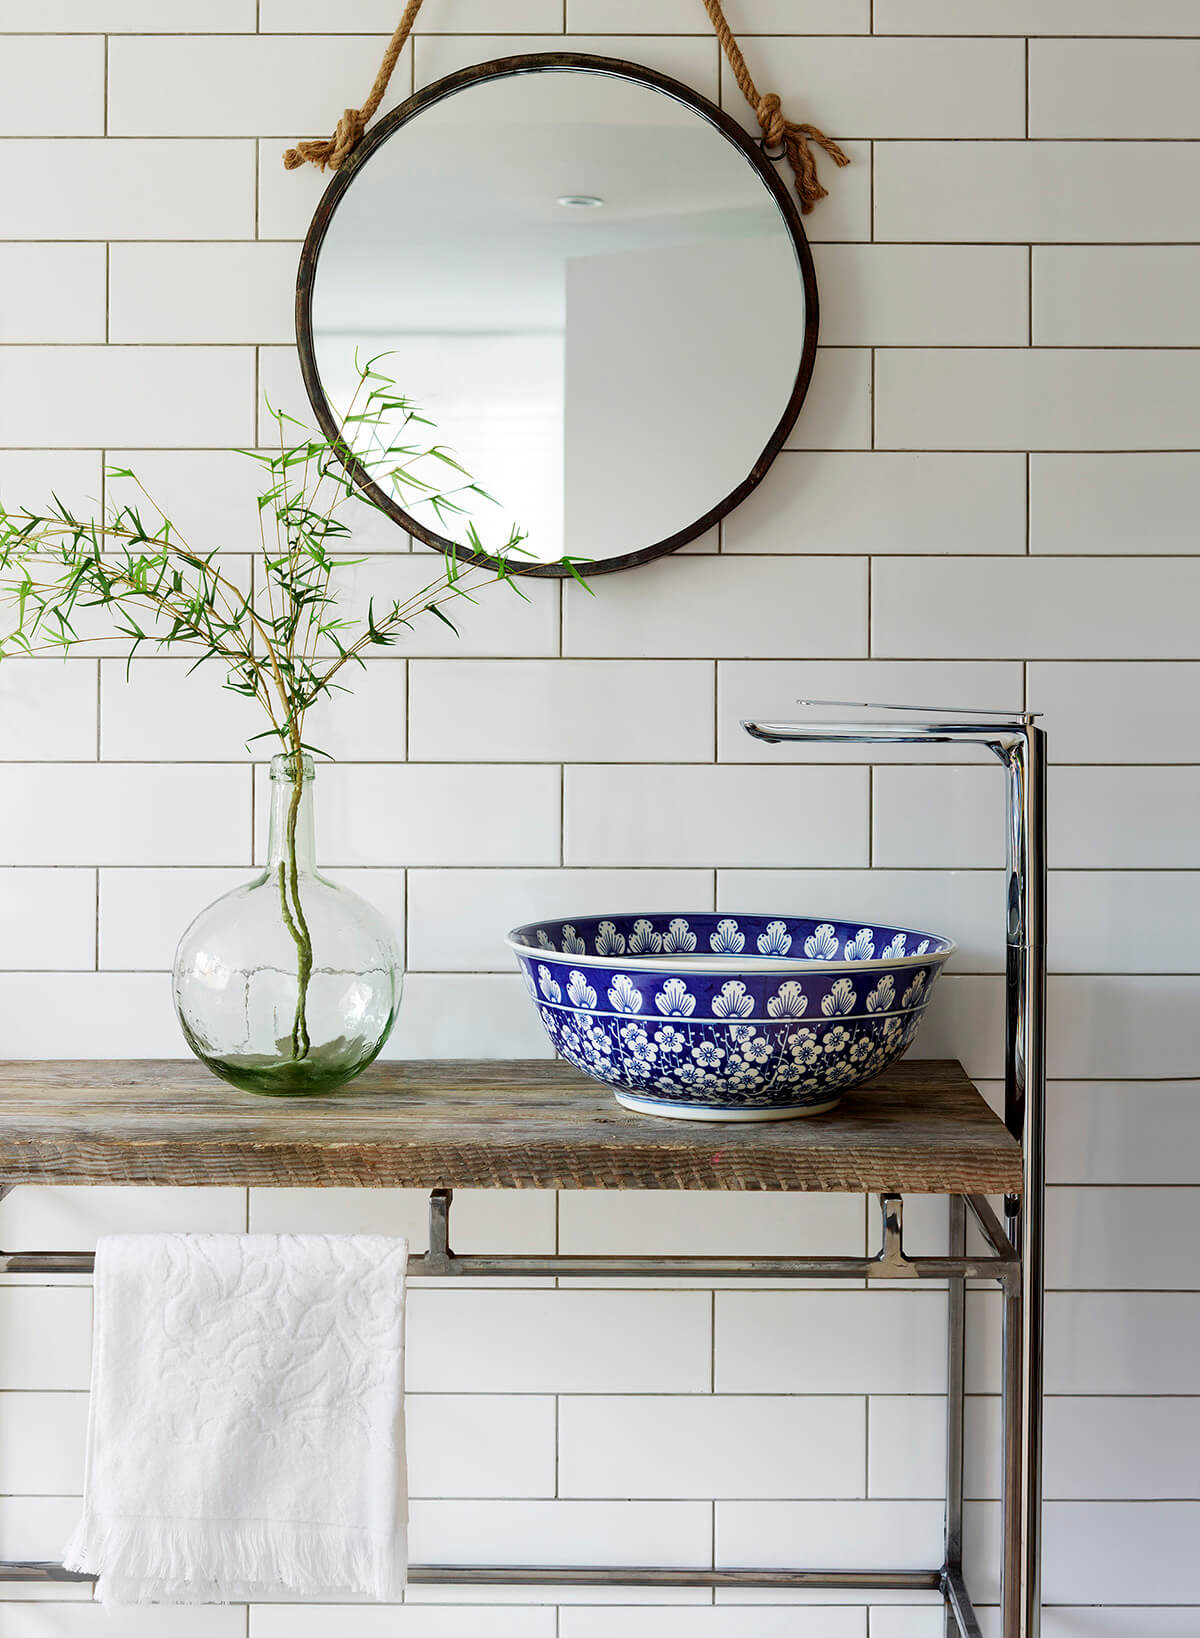 Beautiful Sink with a Pop of Color